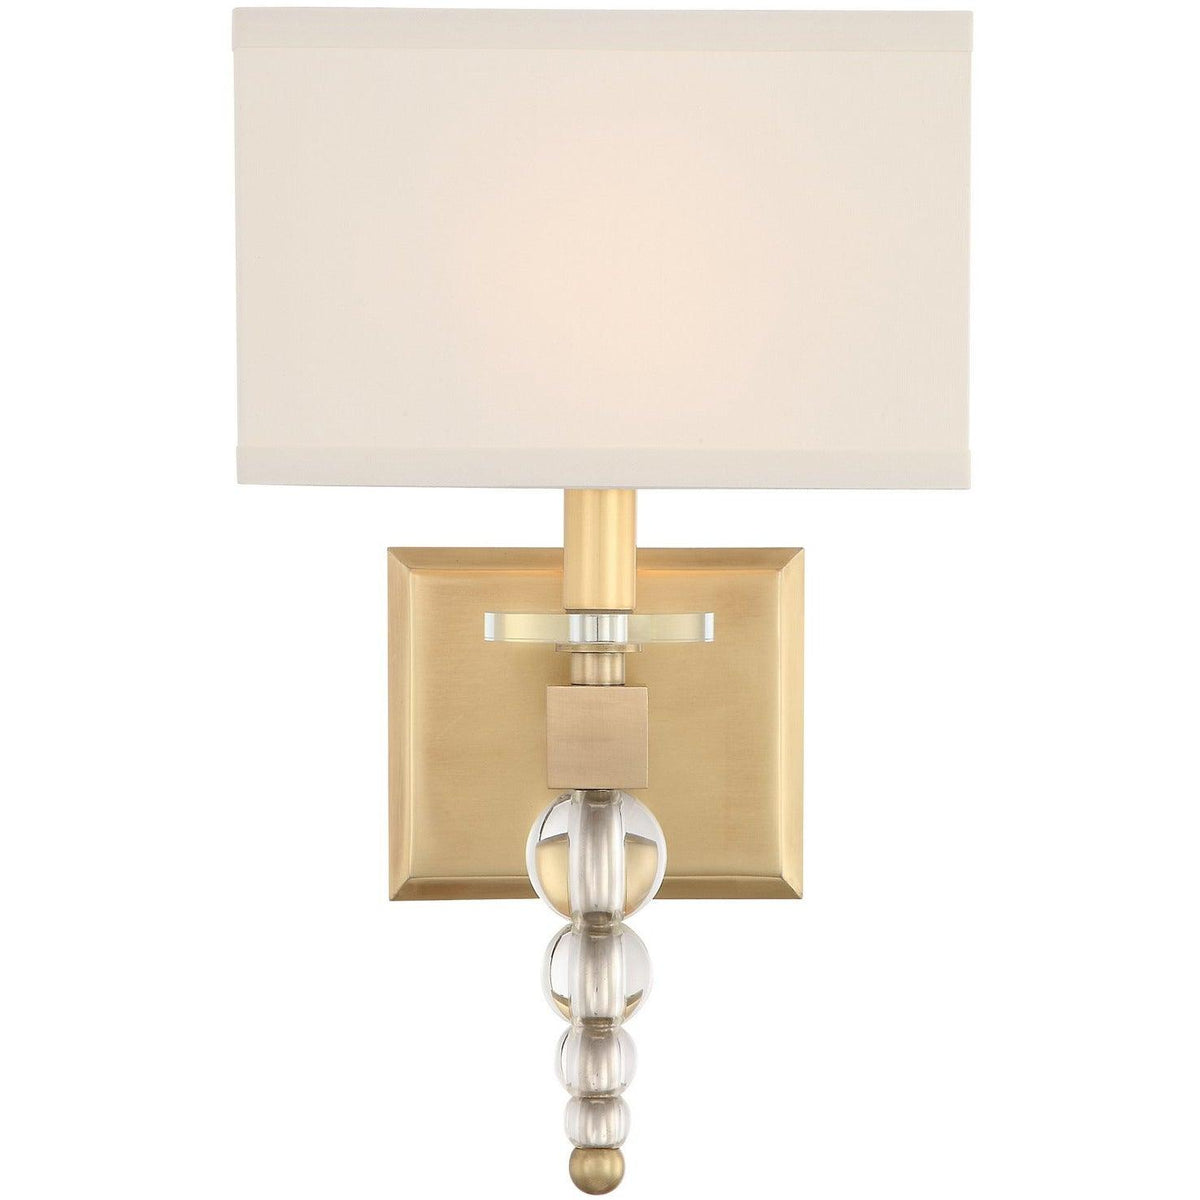 Crystorama - CLO-8892-AG - One Light Wall Mount - Clover - Aged Brass